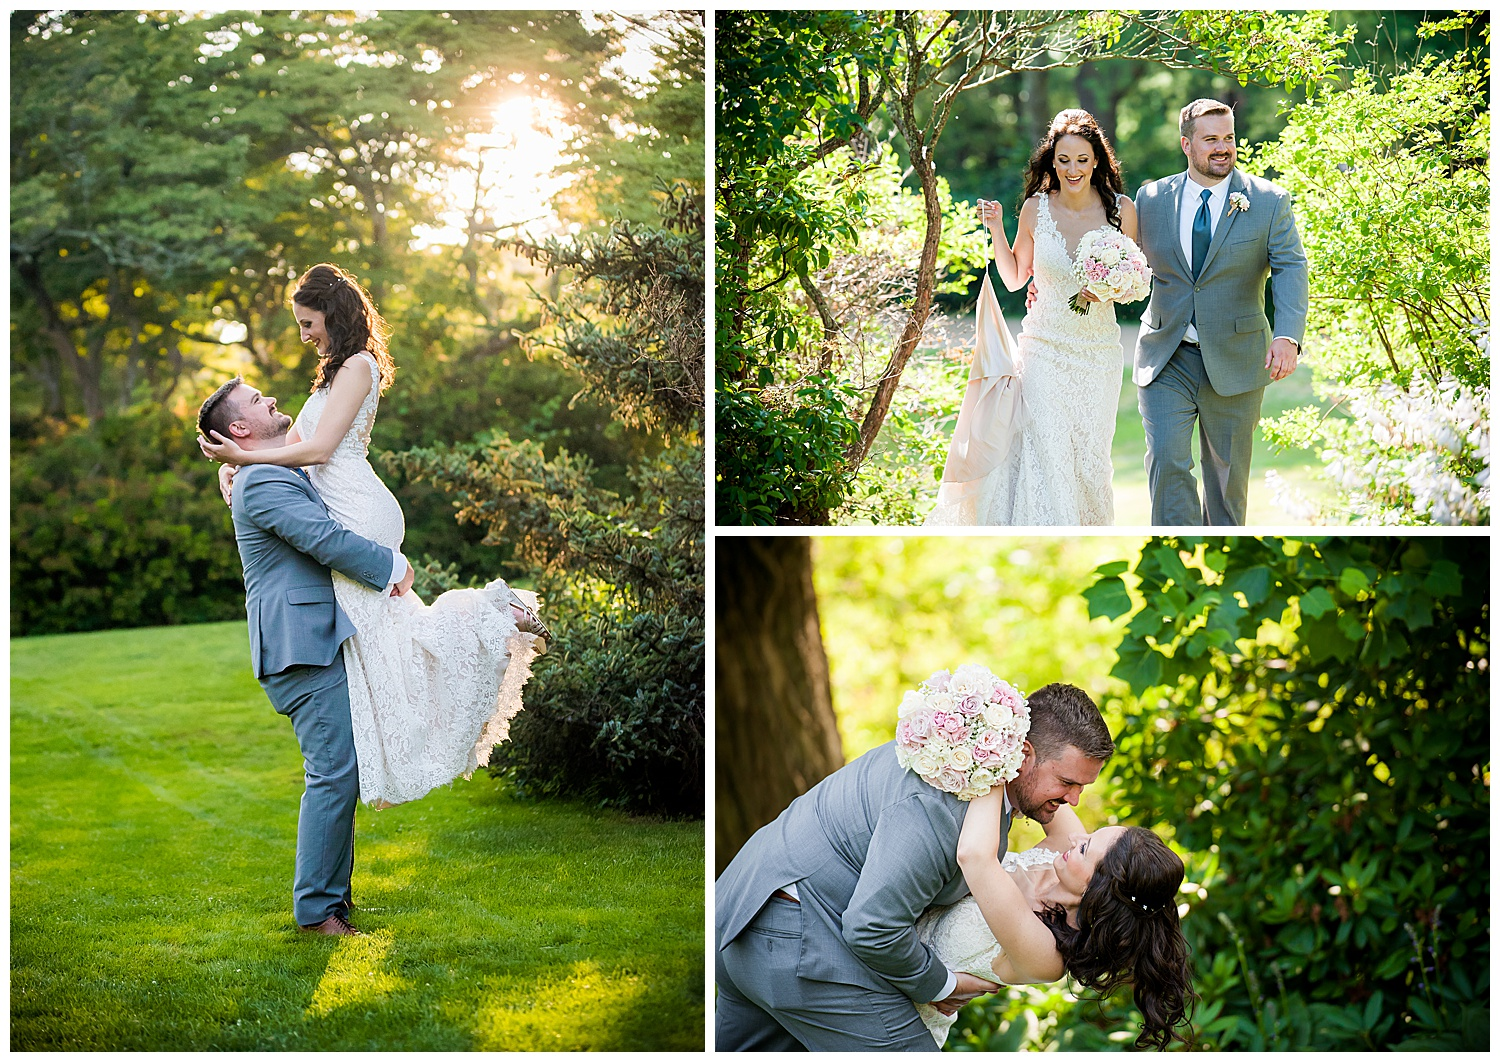 Moraine Farms Bride and Groom Golden Hour Portraits